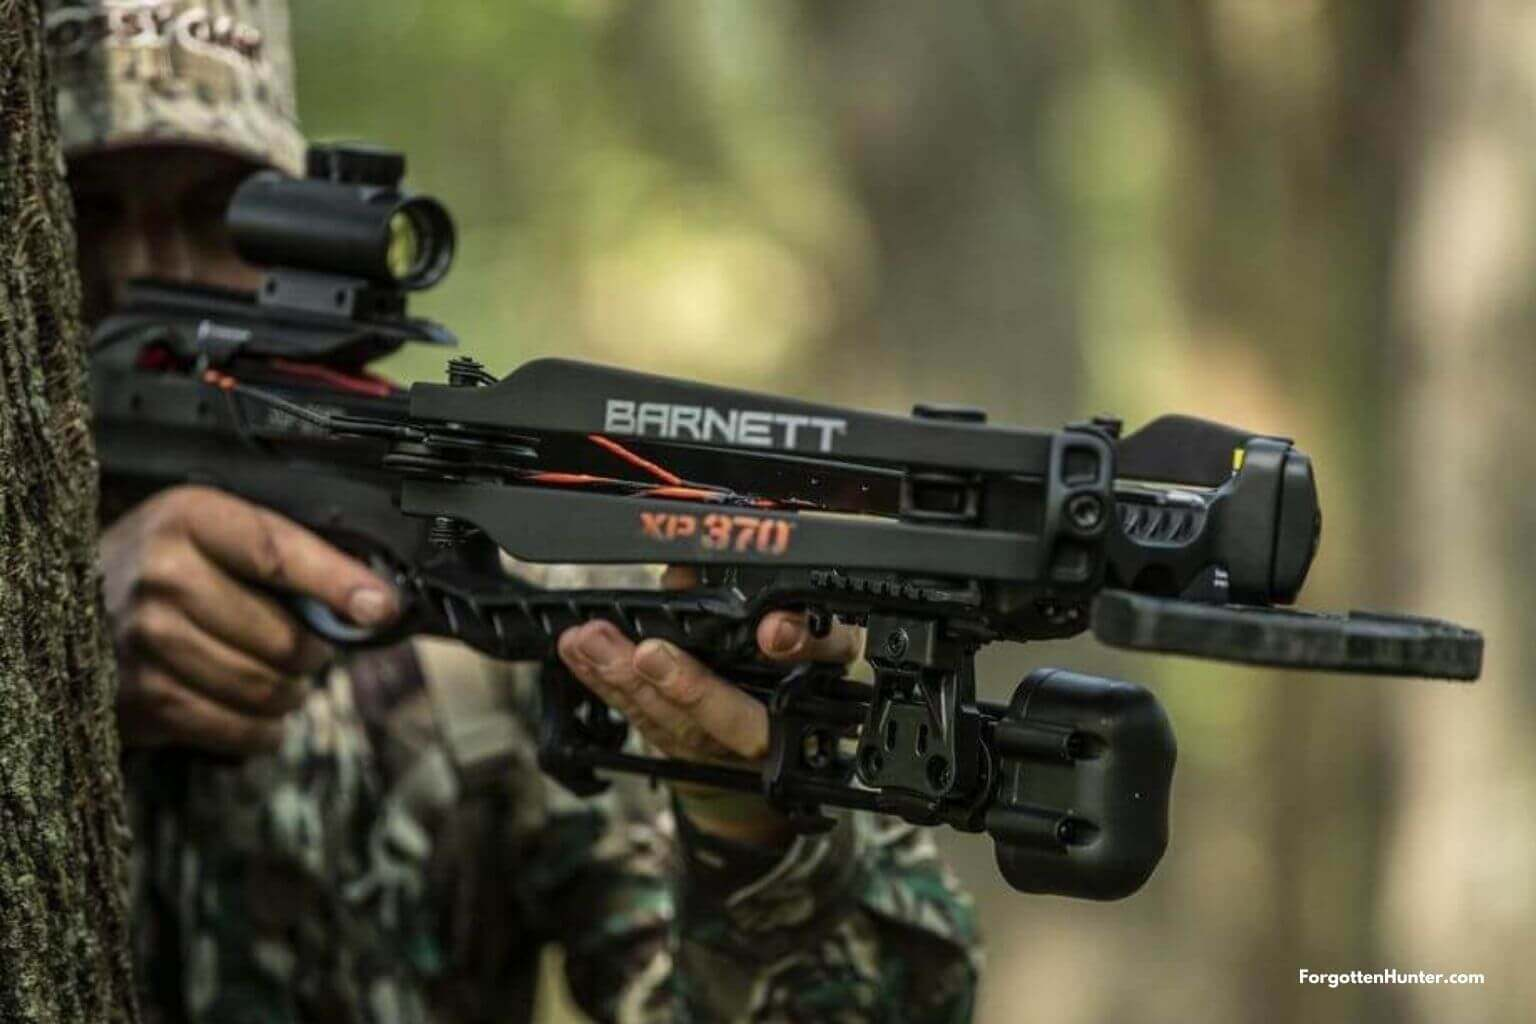 Barnett Explorer Crossbow Series - XP370XP380XP400 Review